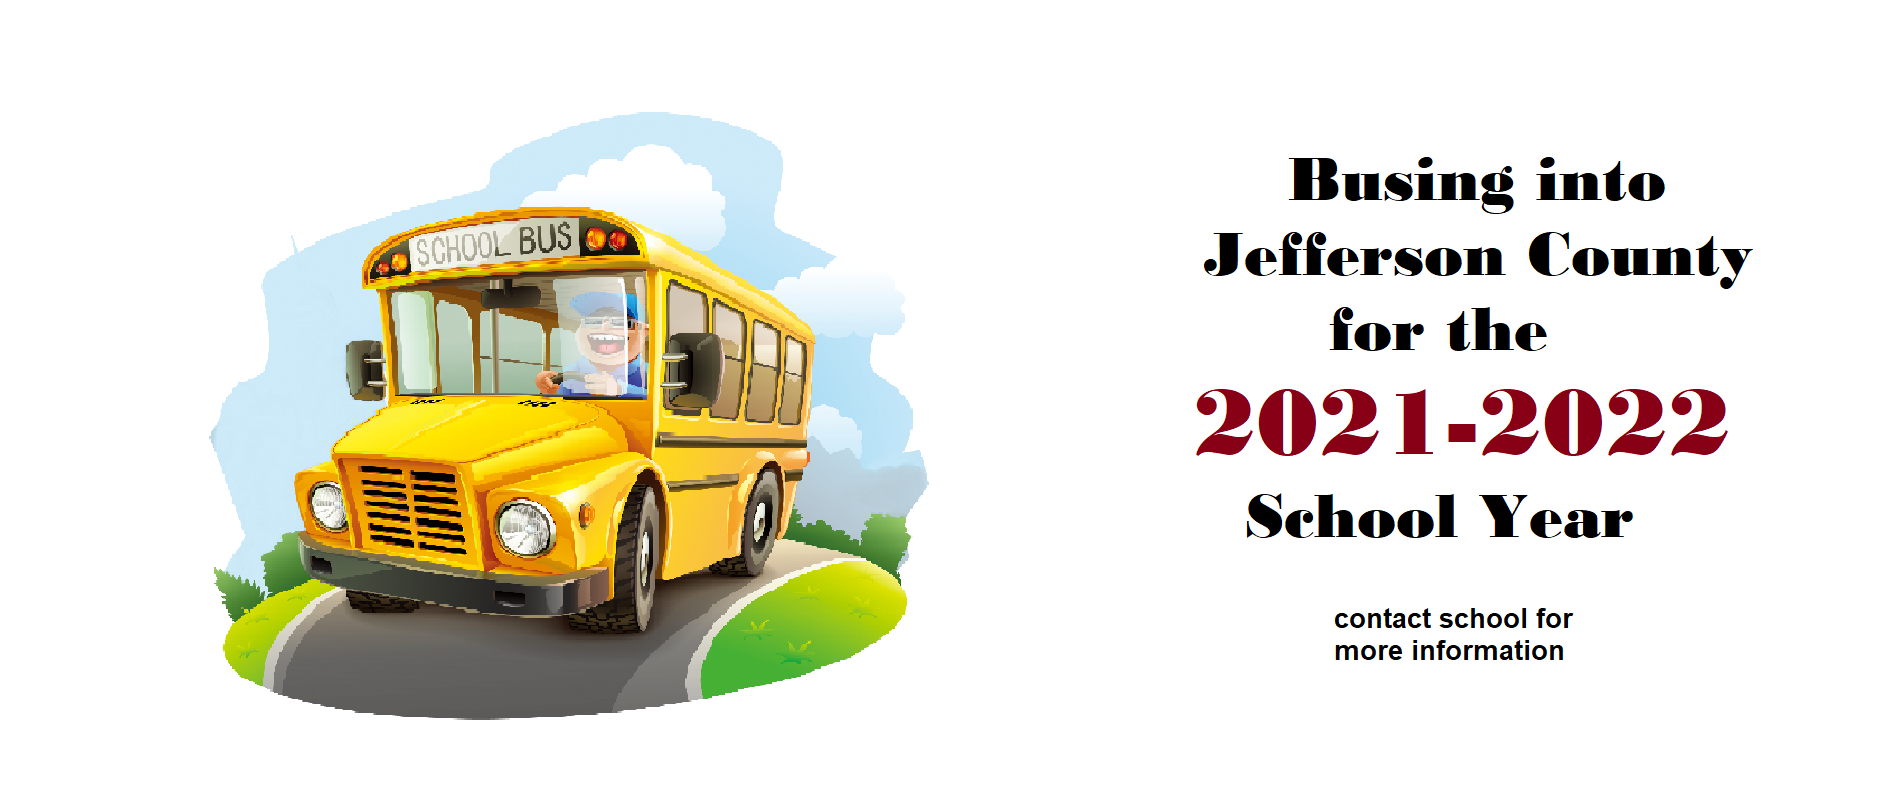 busing into Jefferson County starting 2021-2022 school year